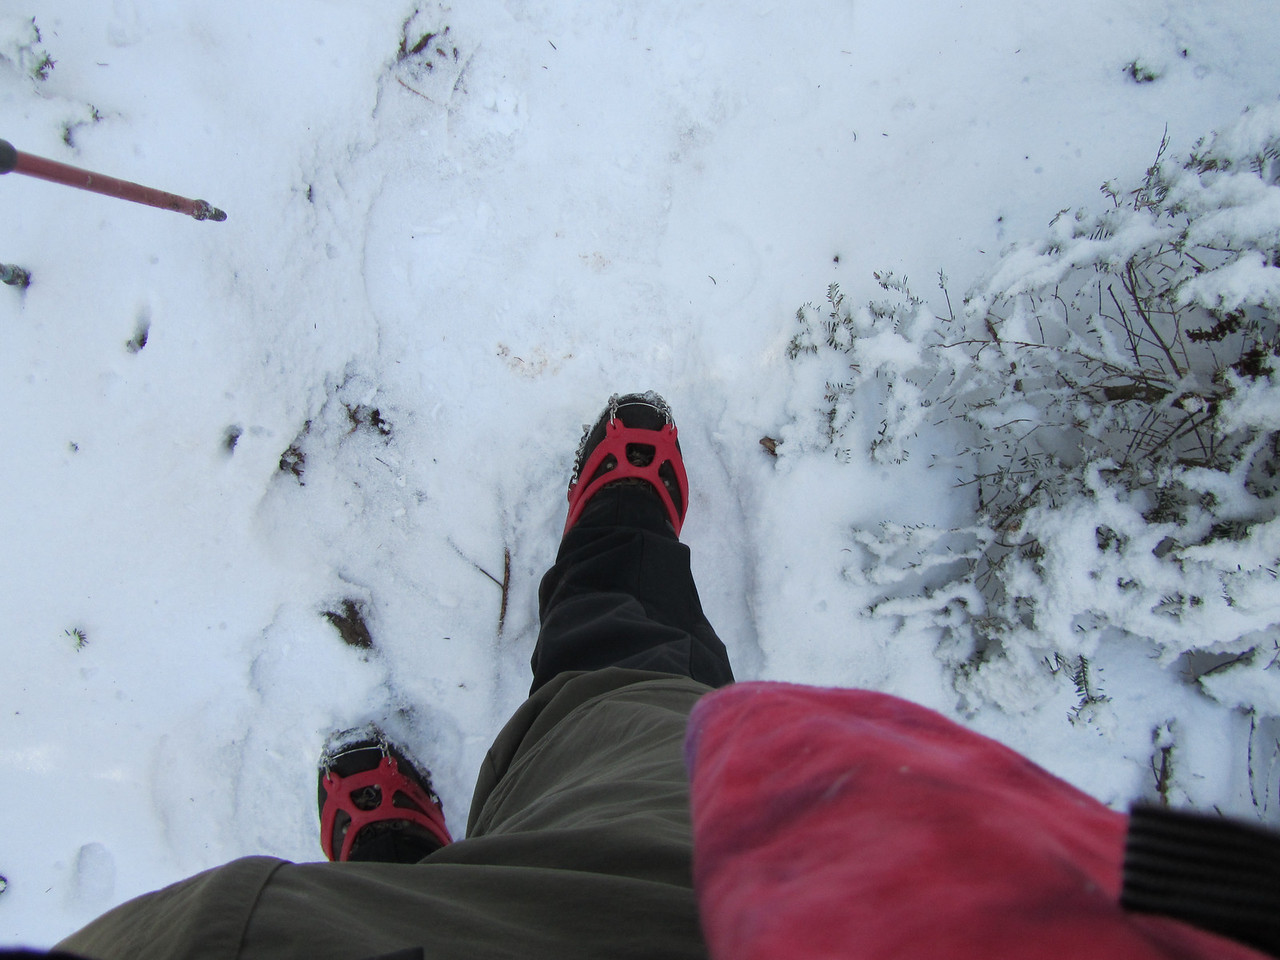 Haha Mother Nature. Gaiters, microspikes and hiking poles. Bring it on.